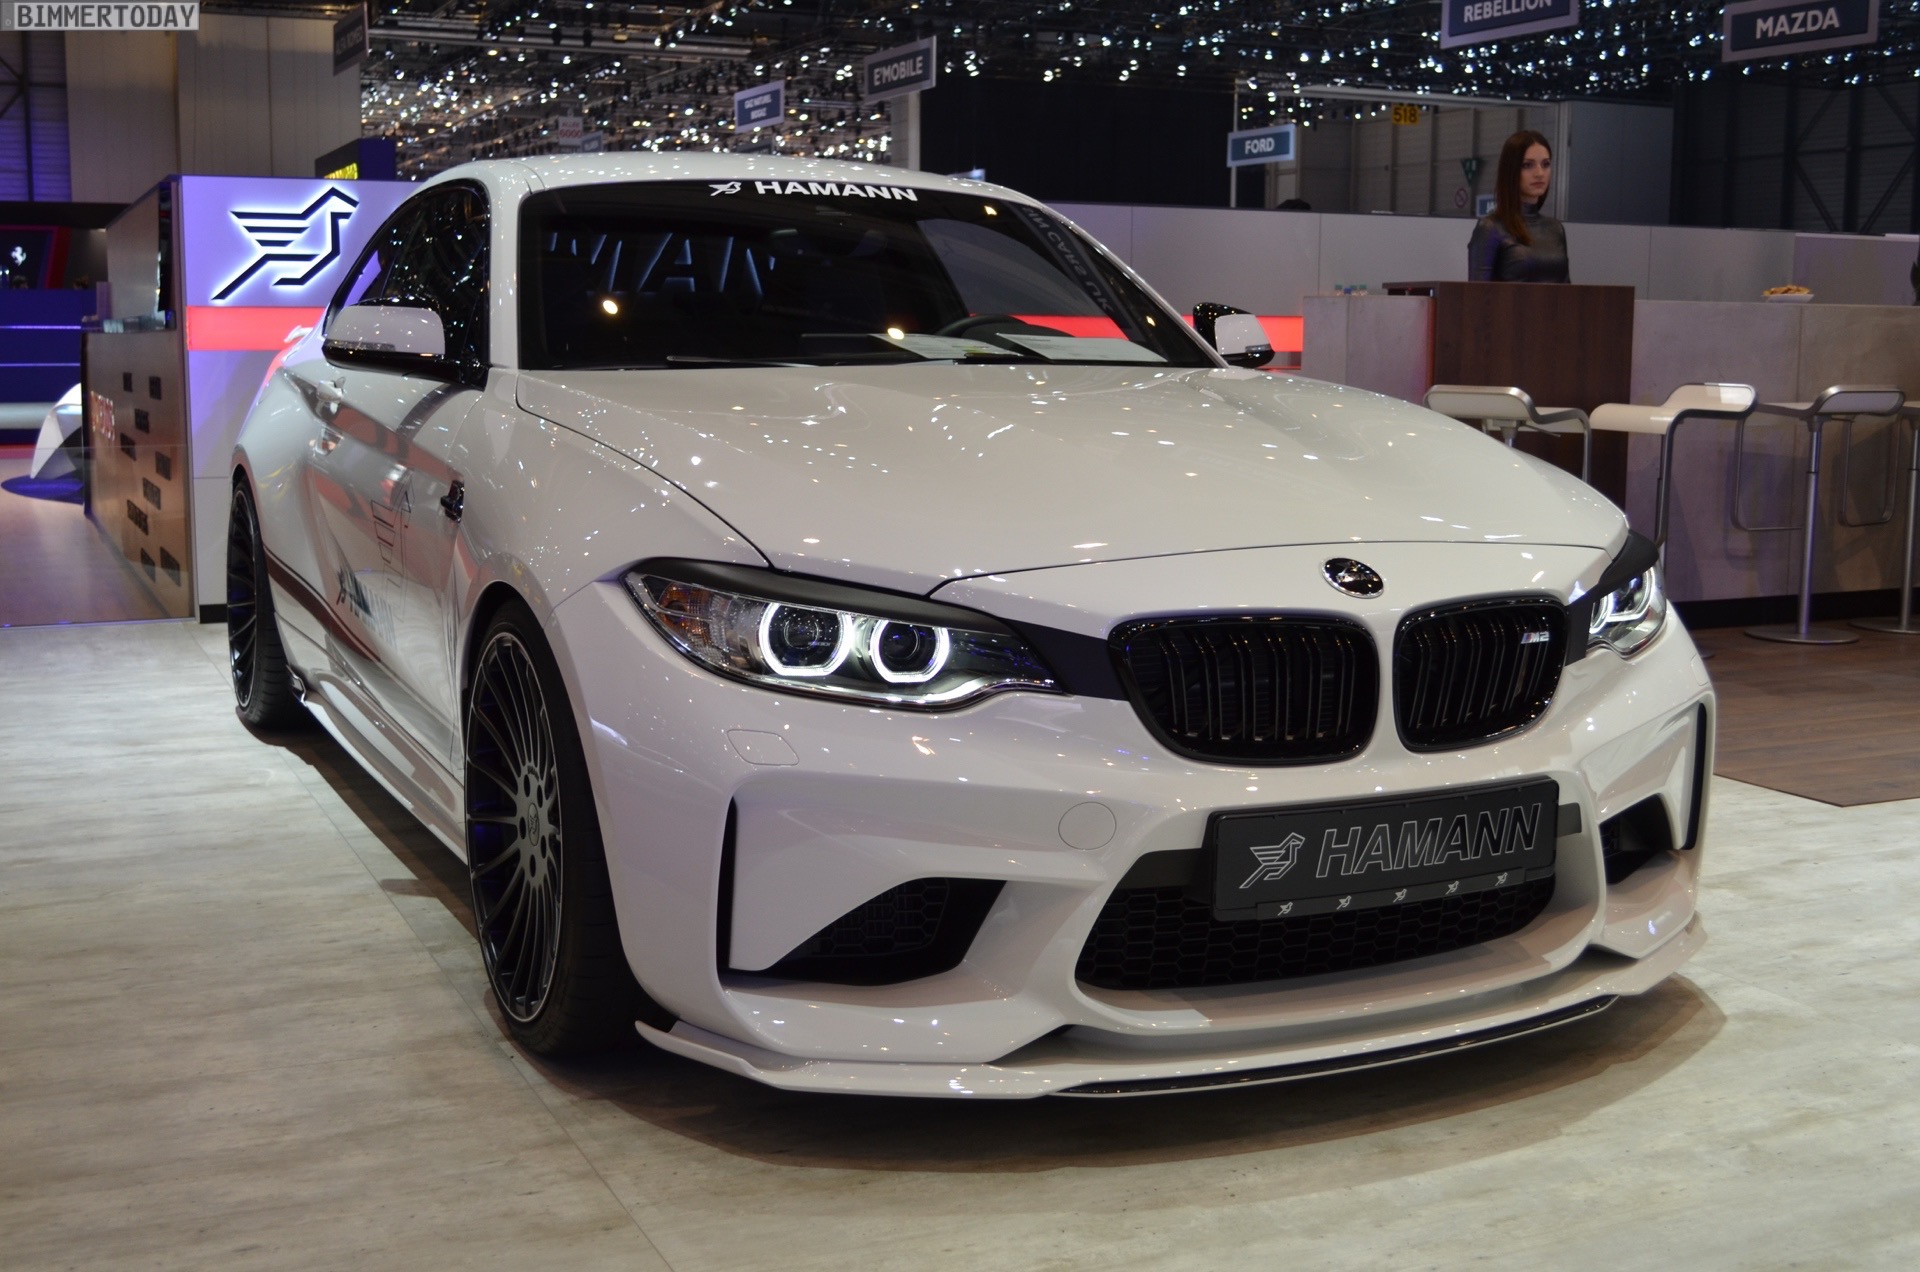 2017 Geneva Bmw M2 With 420 Hp Tuning From Hamann Motorsport